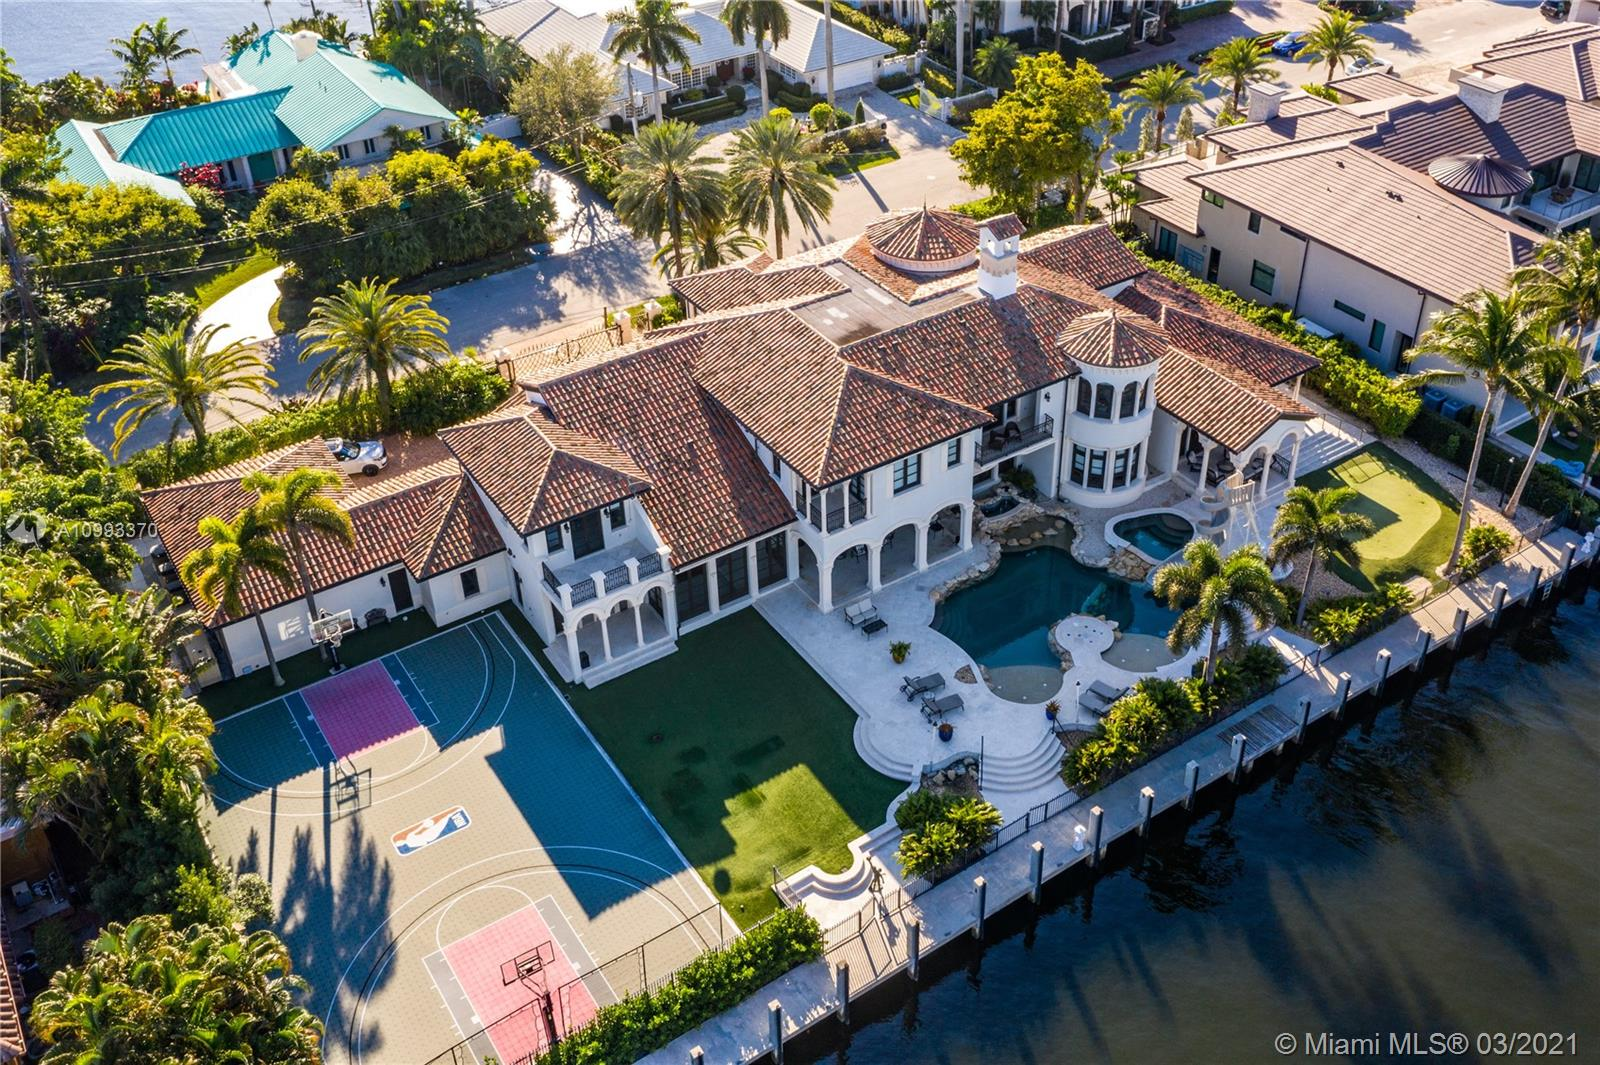 Located in Harbor Beach, one of the most exclusive gated communities in Ft Lauderdale, is the spectacular Italian inspired, resort-style estate designed by renowned Randall Stofft Architects. Meditteranean Villa spans almost 13,500 sqft on a double lot with 215' of frontage along the Intracoastal Waterway. A boater's paradise: deep water frontage on a 135' wide canal accommodates mega yachts up to 190'. The 6 bedroom estate has 7 full and 2 partial bathrooms, elevator. Perfect for entertaining with resort-style amenities: chilled wine room, theater, game room, gym, hot tub, swimming pool with a slide, fountains and a commercial-grade summer kitchen. The outdoor amenities also include a full-size NBA basketball court. Optional Surf Club membership and private marina available.